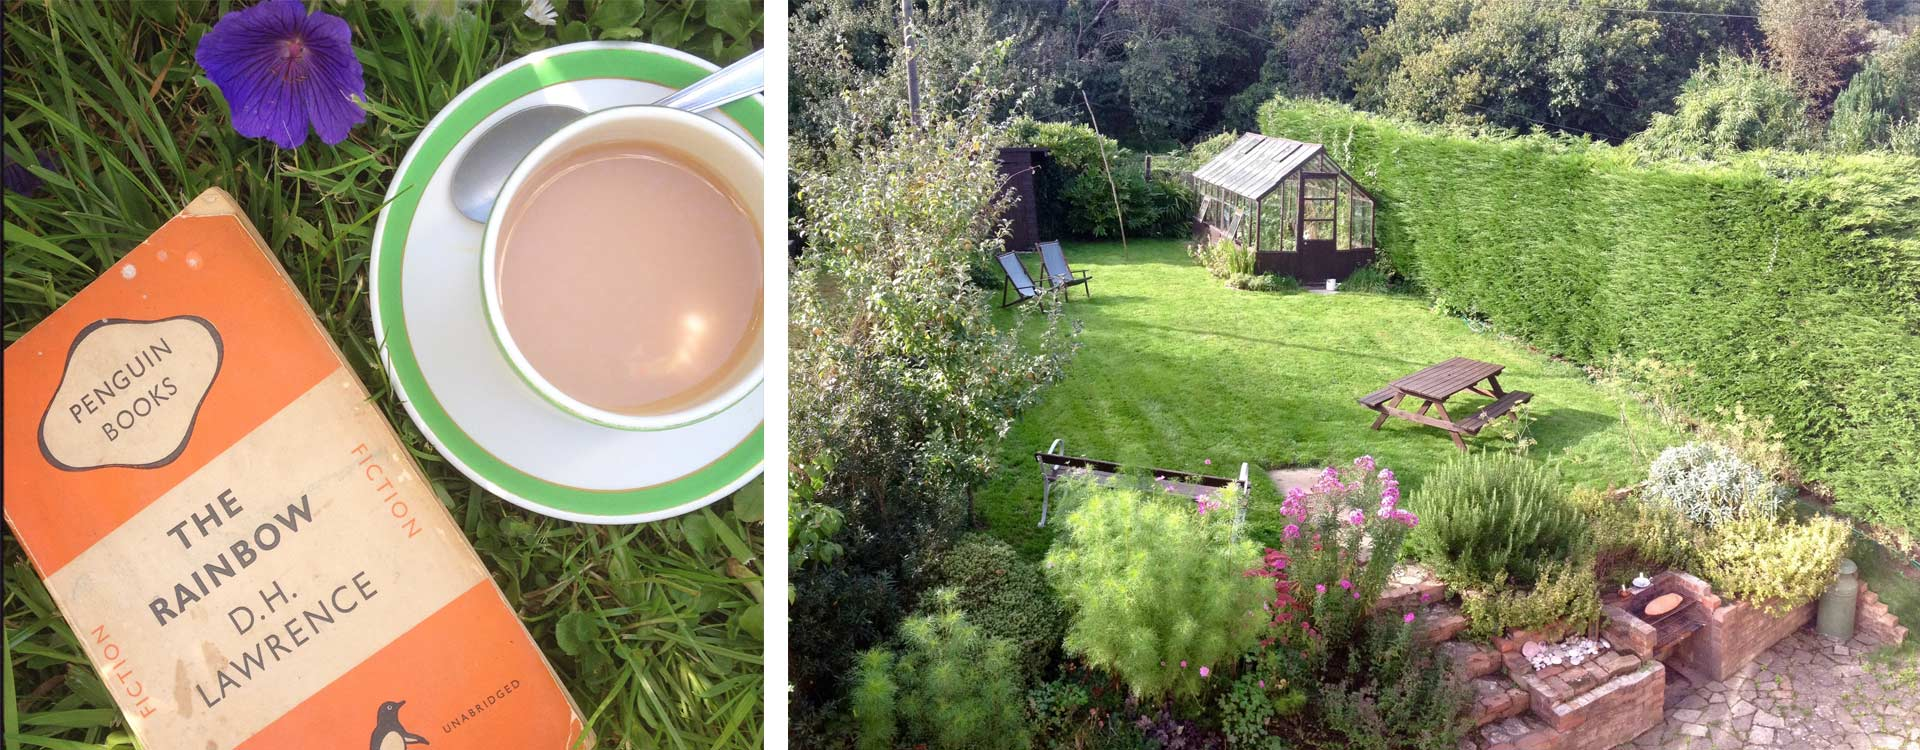 take time to relax and enjoy the garden at The Pink House Lulworth